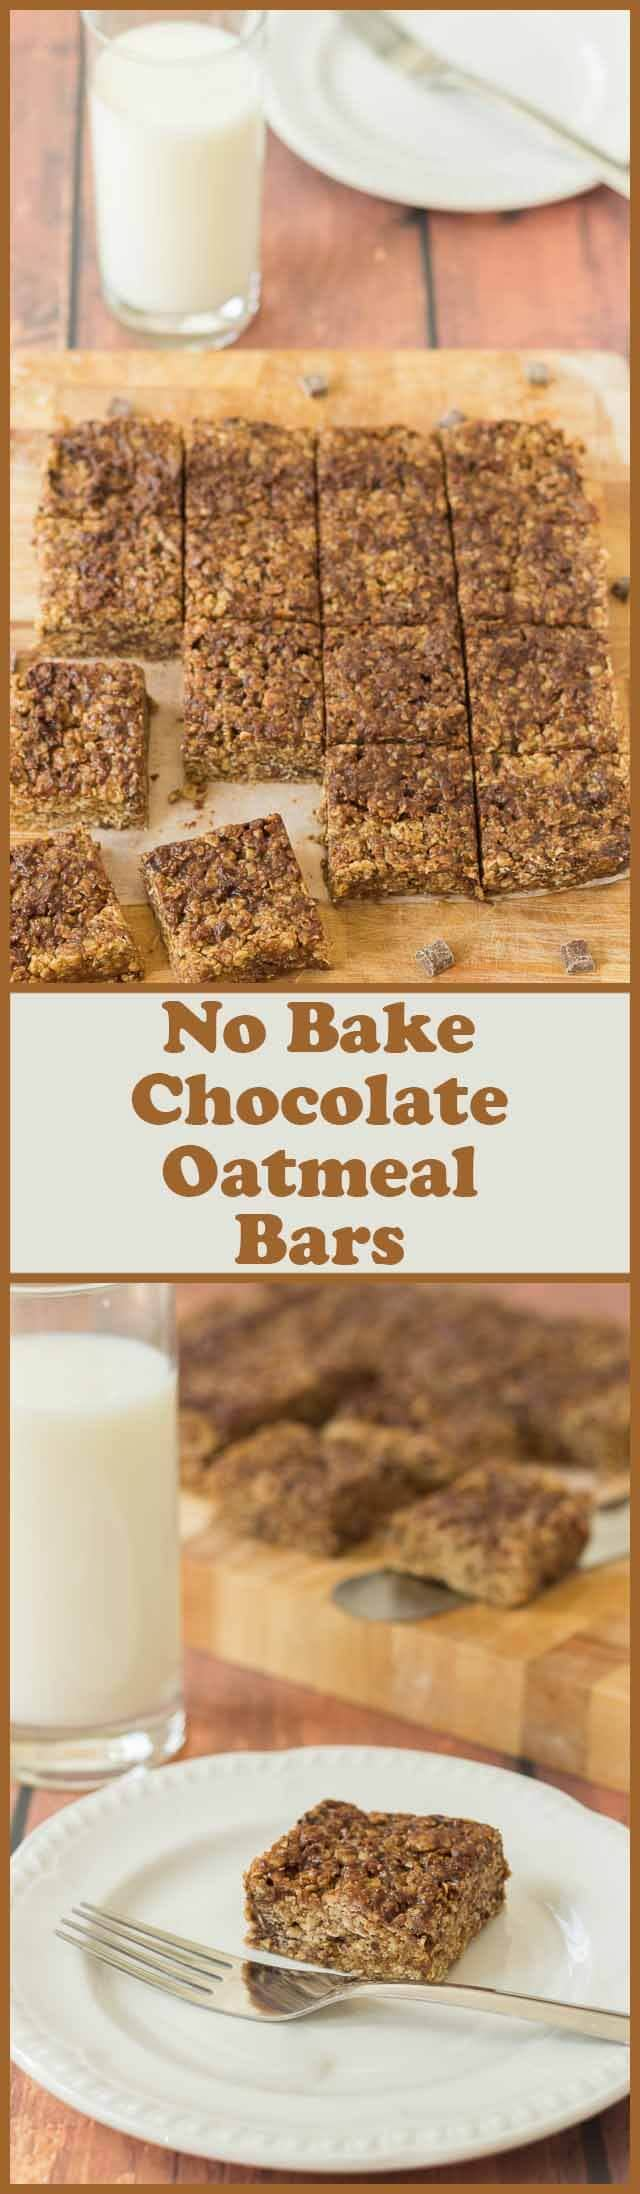 No bake chocolate oatmeal bars. Just 5 ingredients and 10 minutes to assemble then time in the fridge overnight and you'll have these delicious treats ready for you to carve.